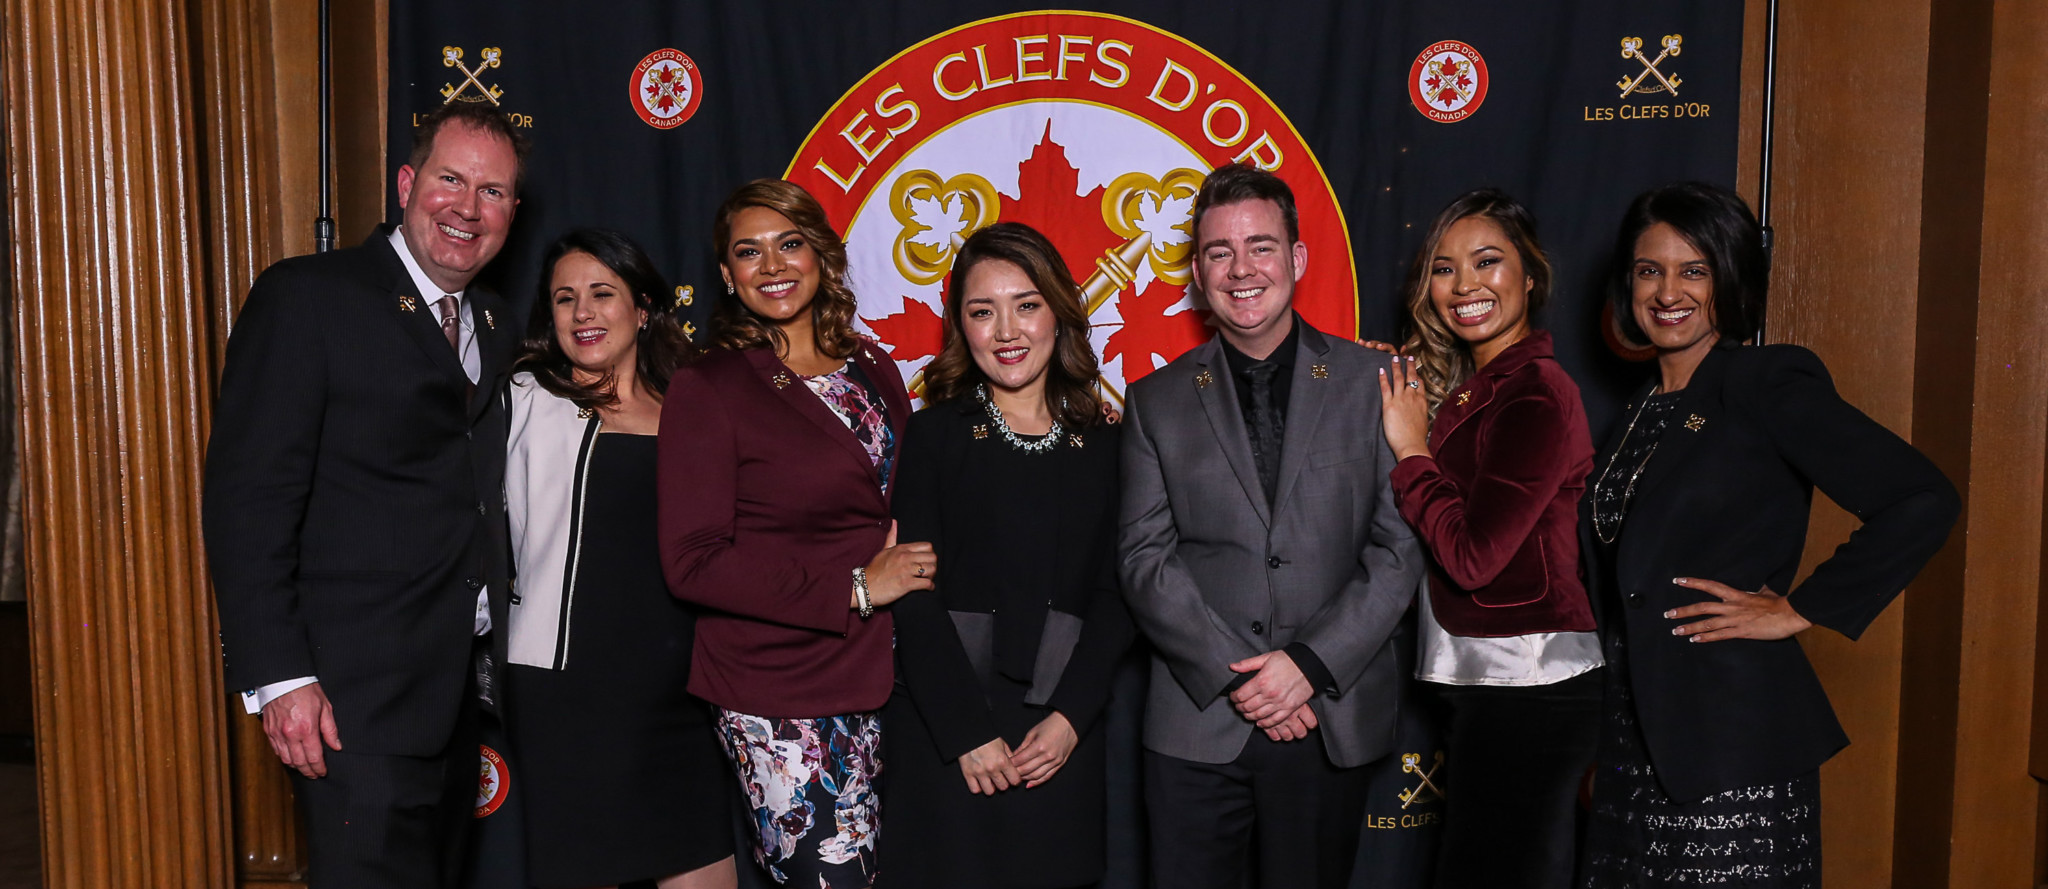 An evening with Les Clefs D'Or British Columbia